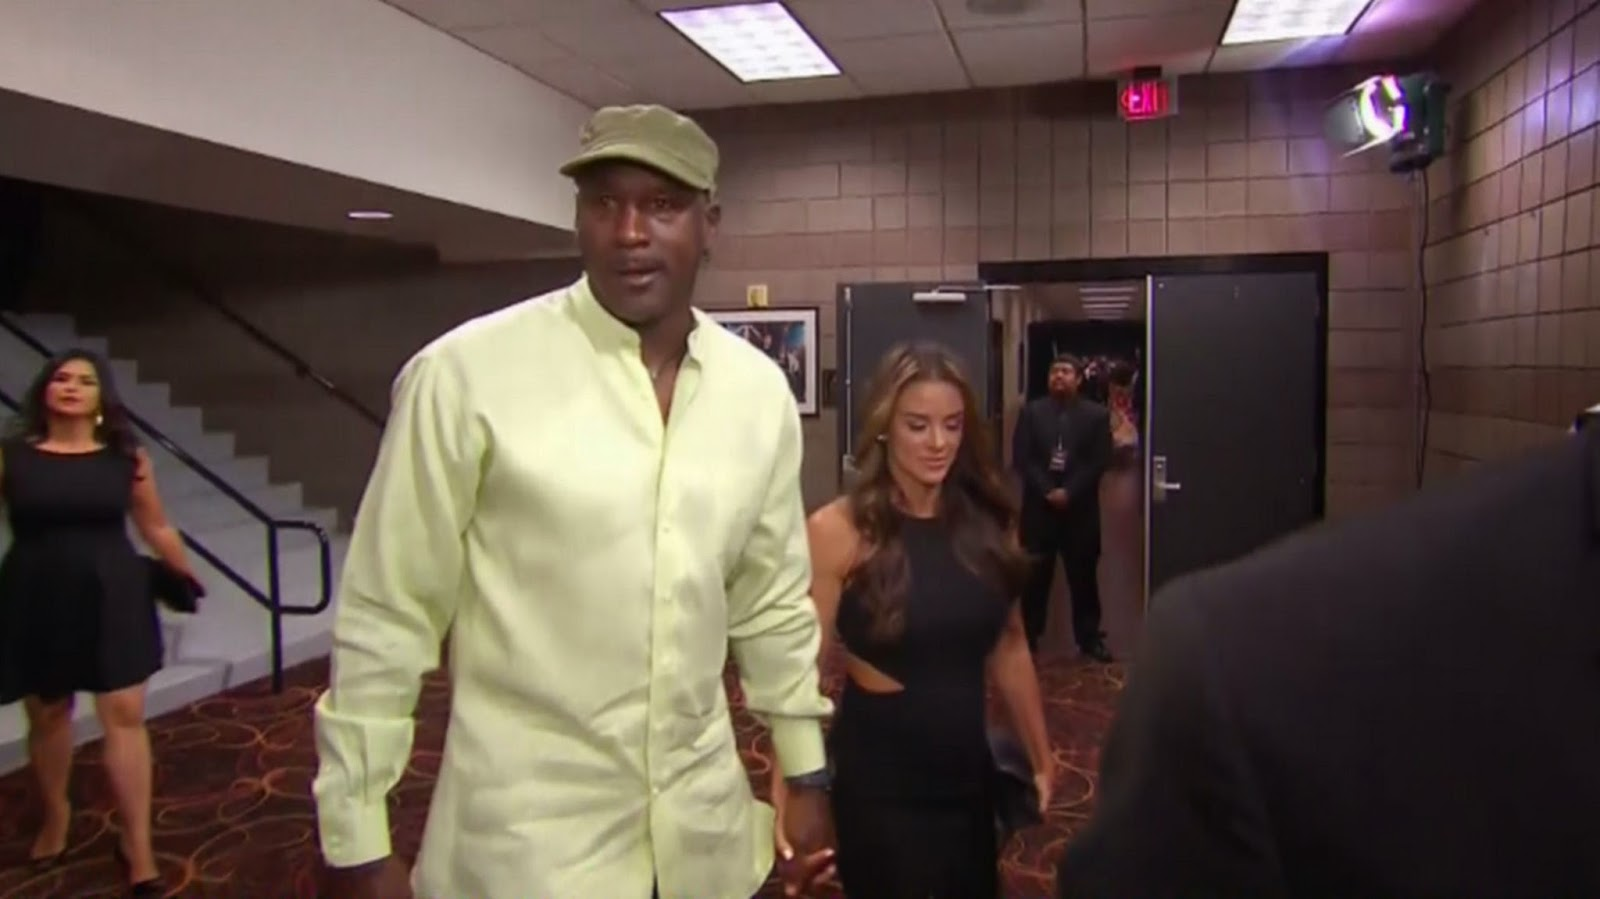 Michael Jordan - Mayweather vs Pacquiao in Las Vegas